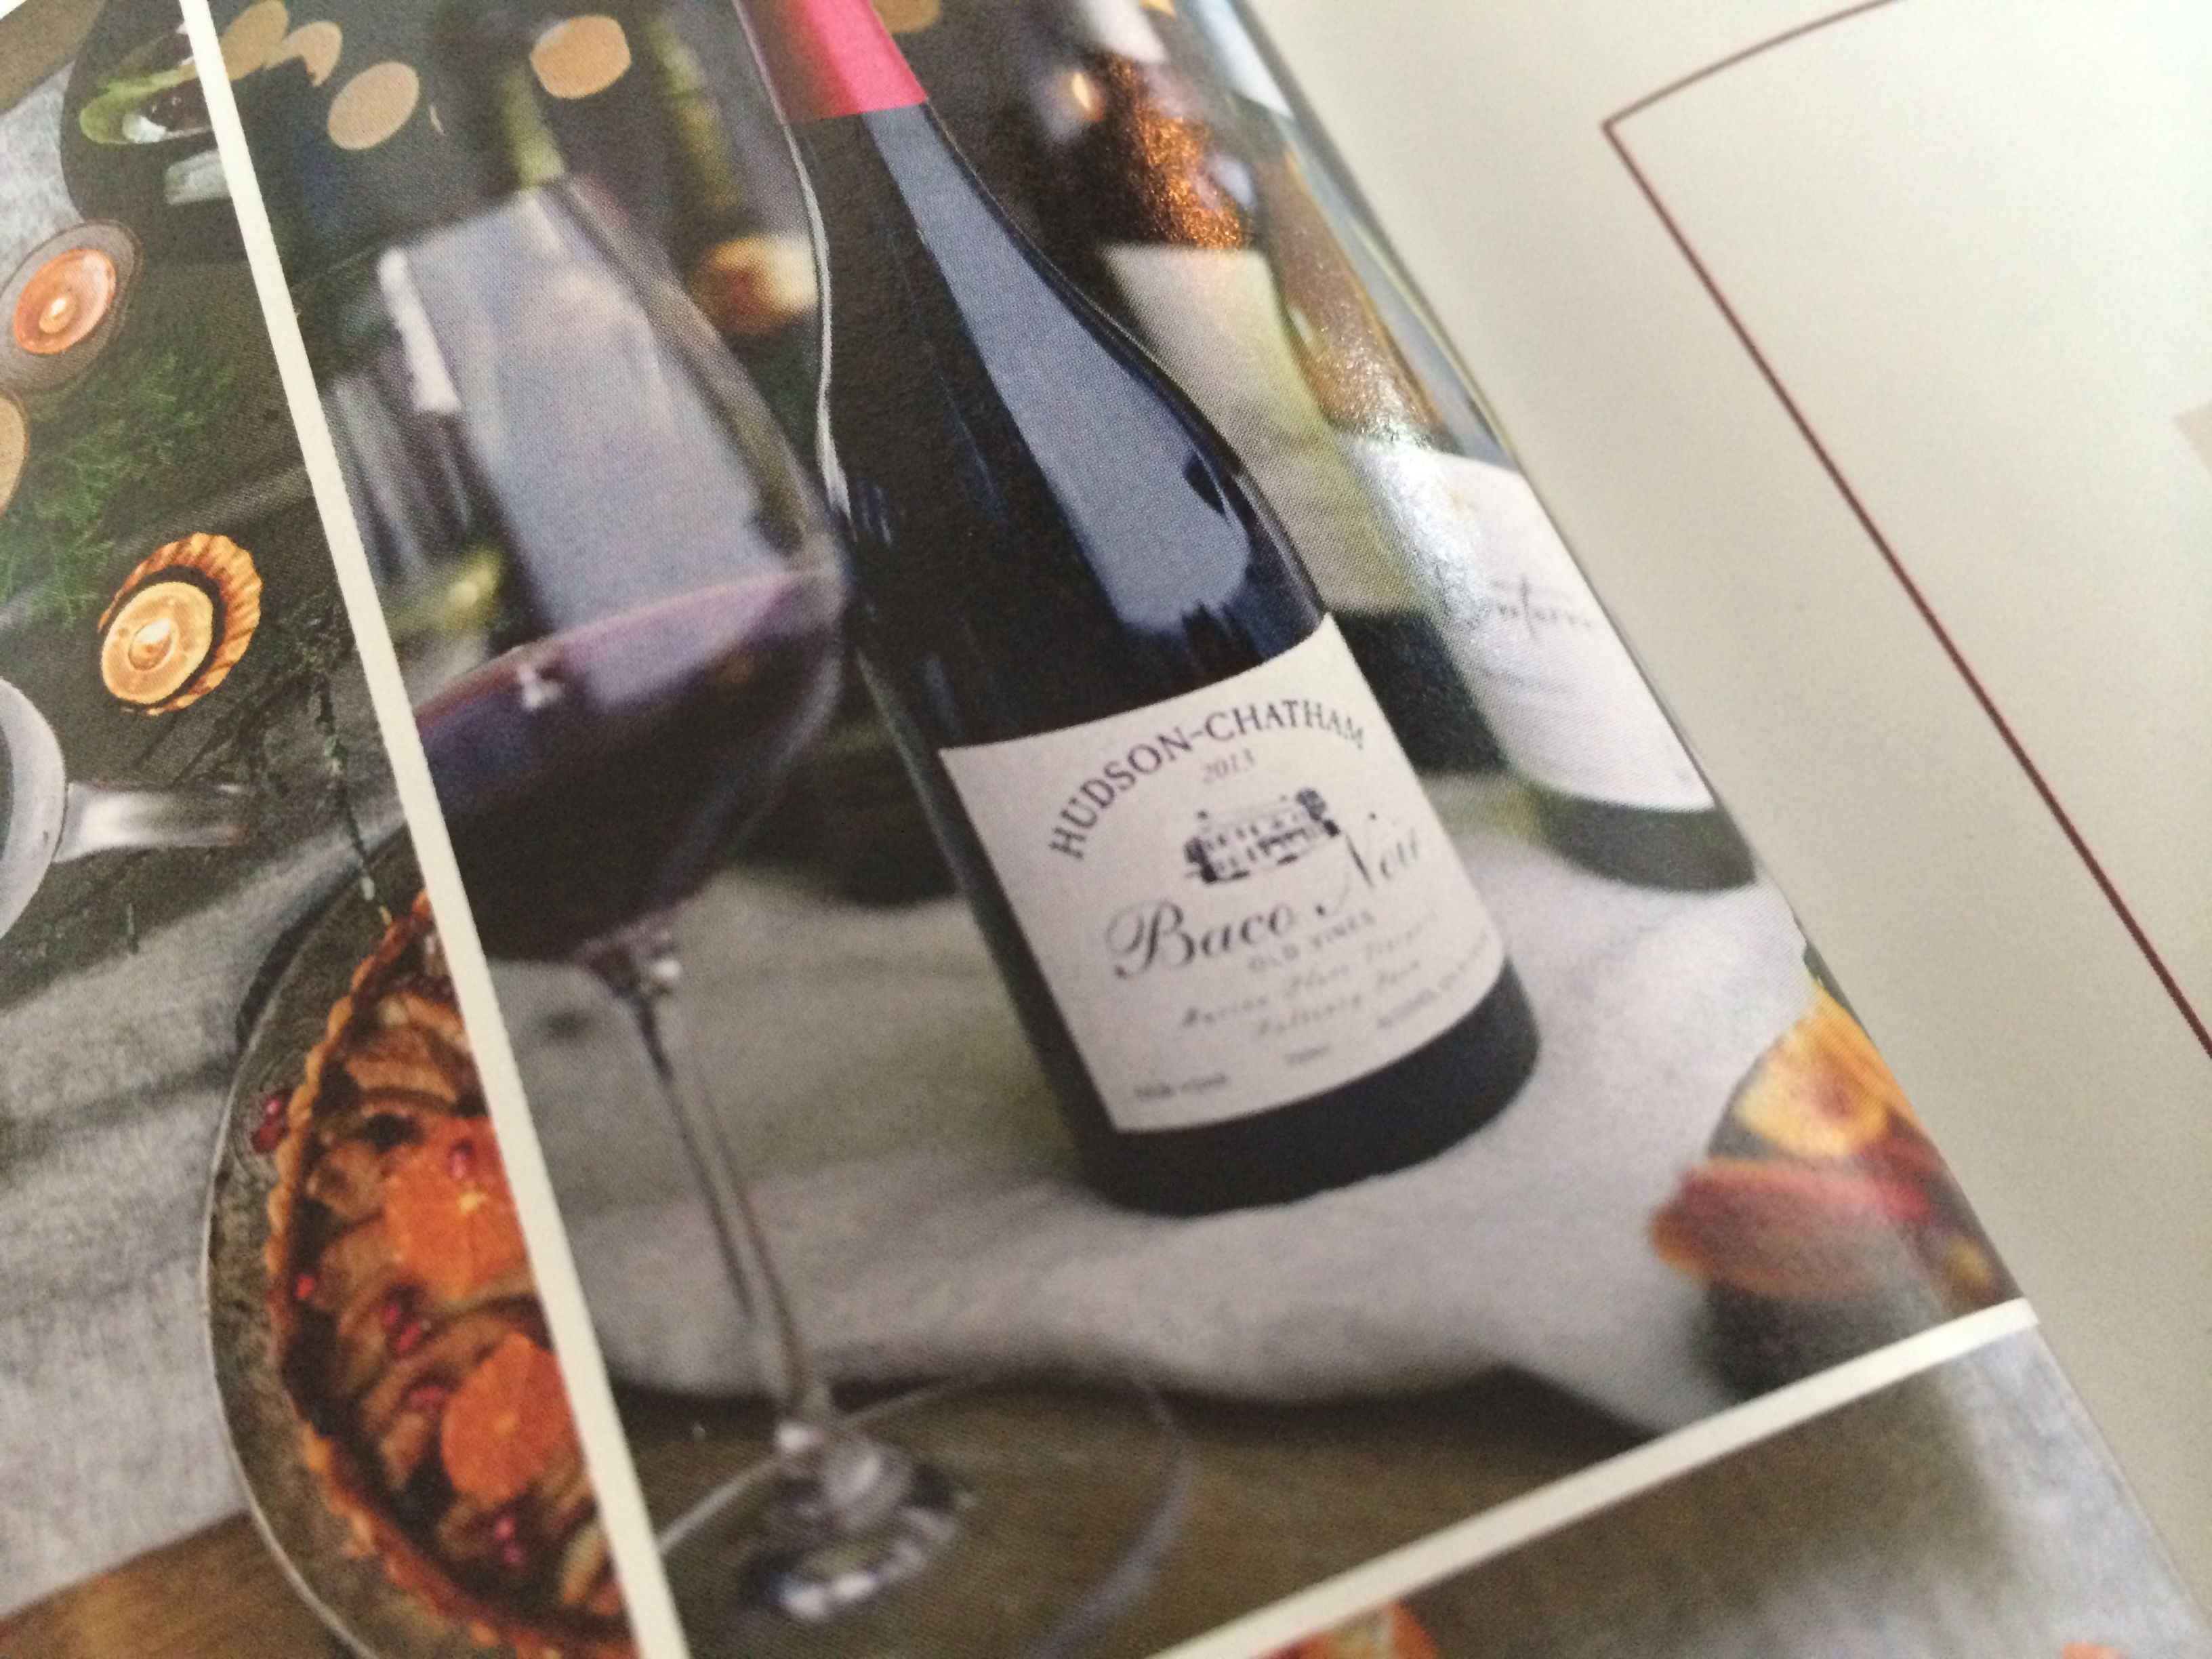 HudsonChatham Winery has received rave reviews from Wine